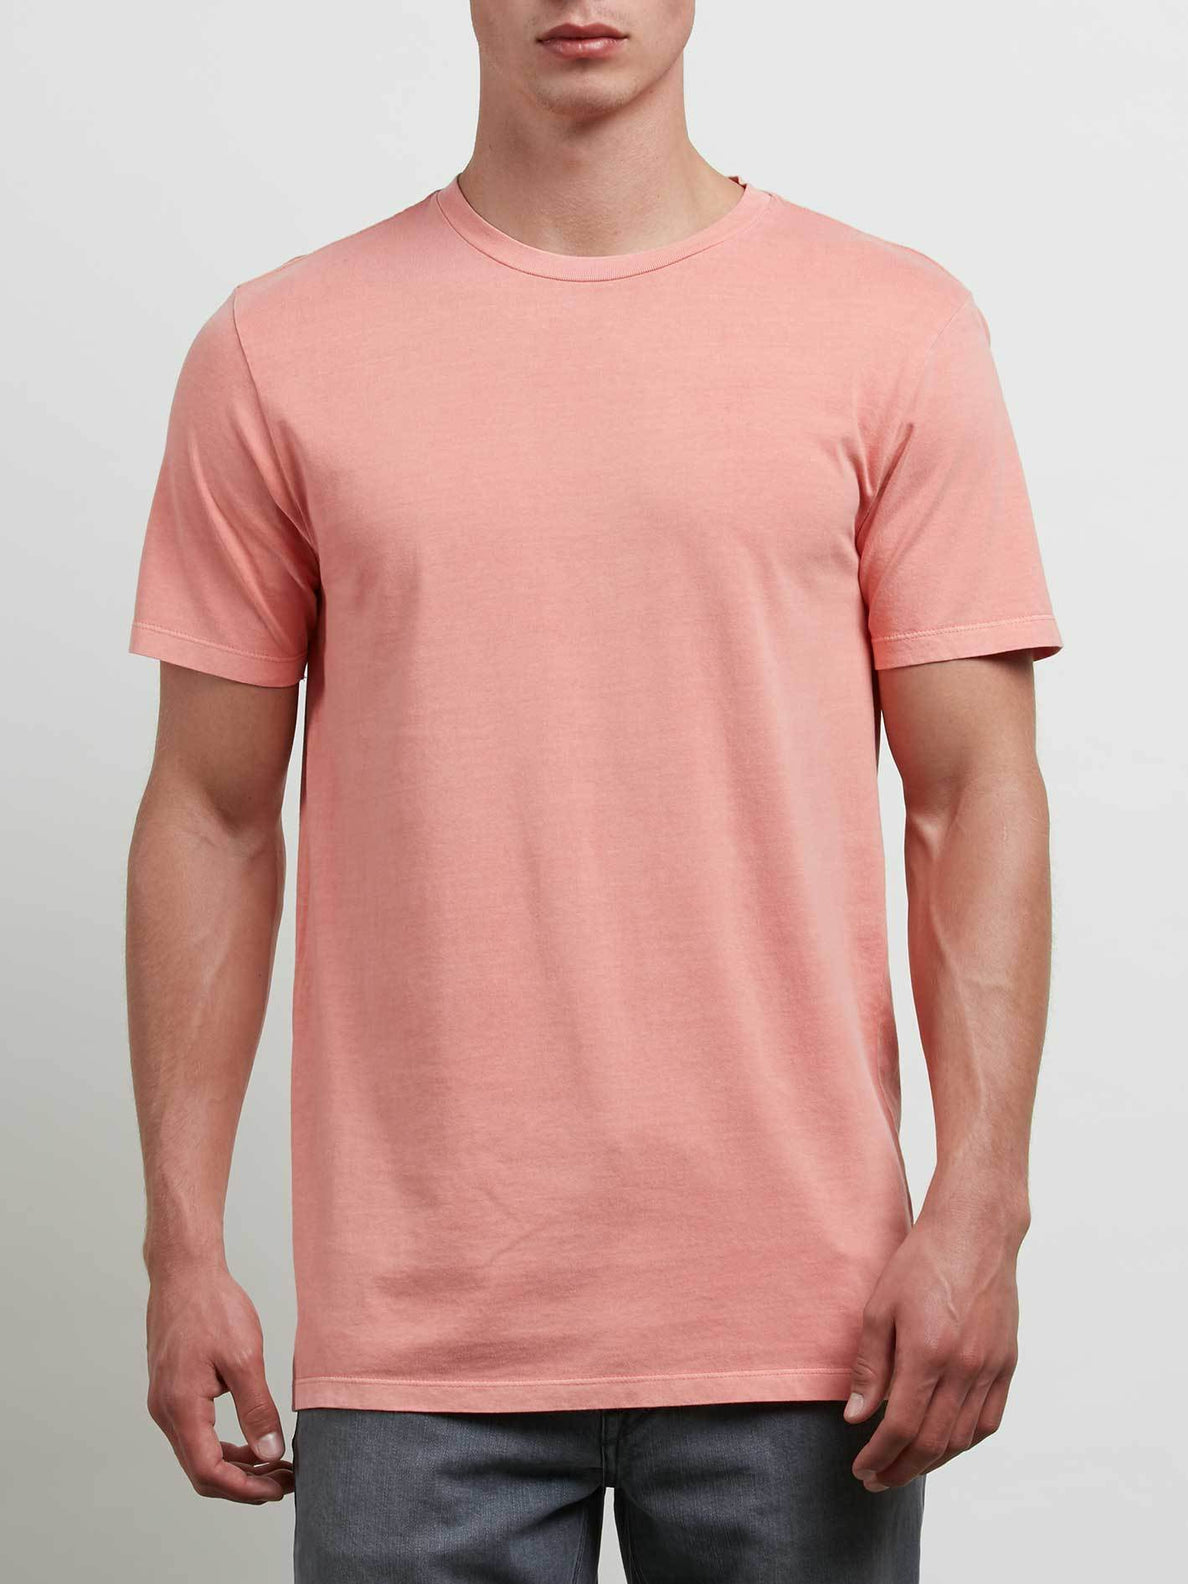 Camiseta De Manga Corta Lisa Pale Wash - Salmon